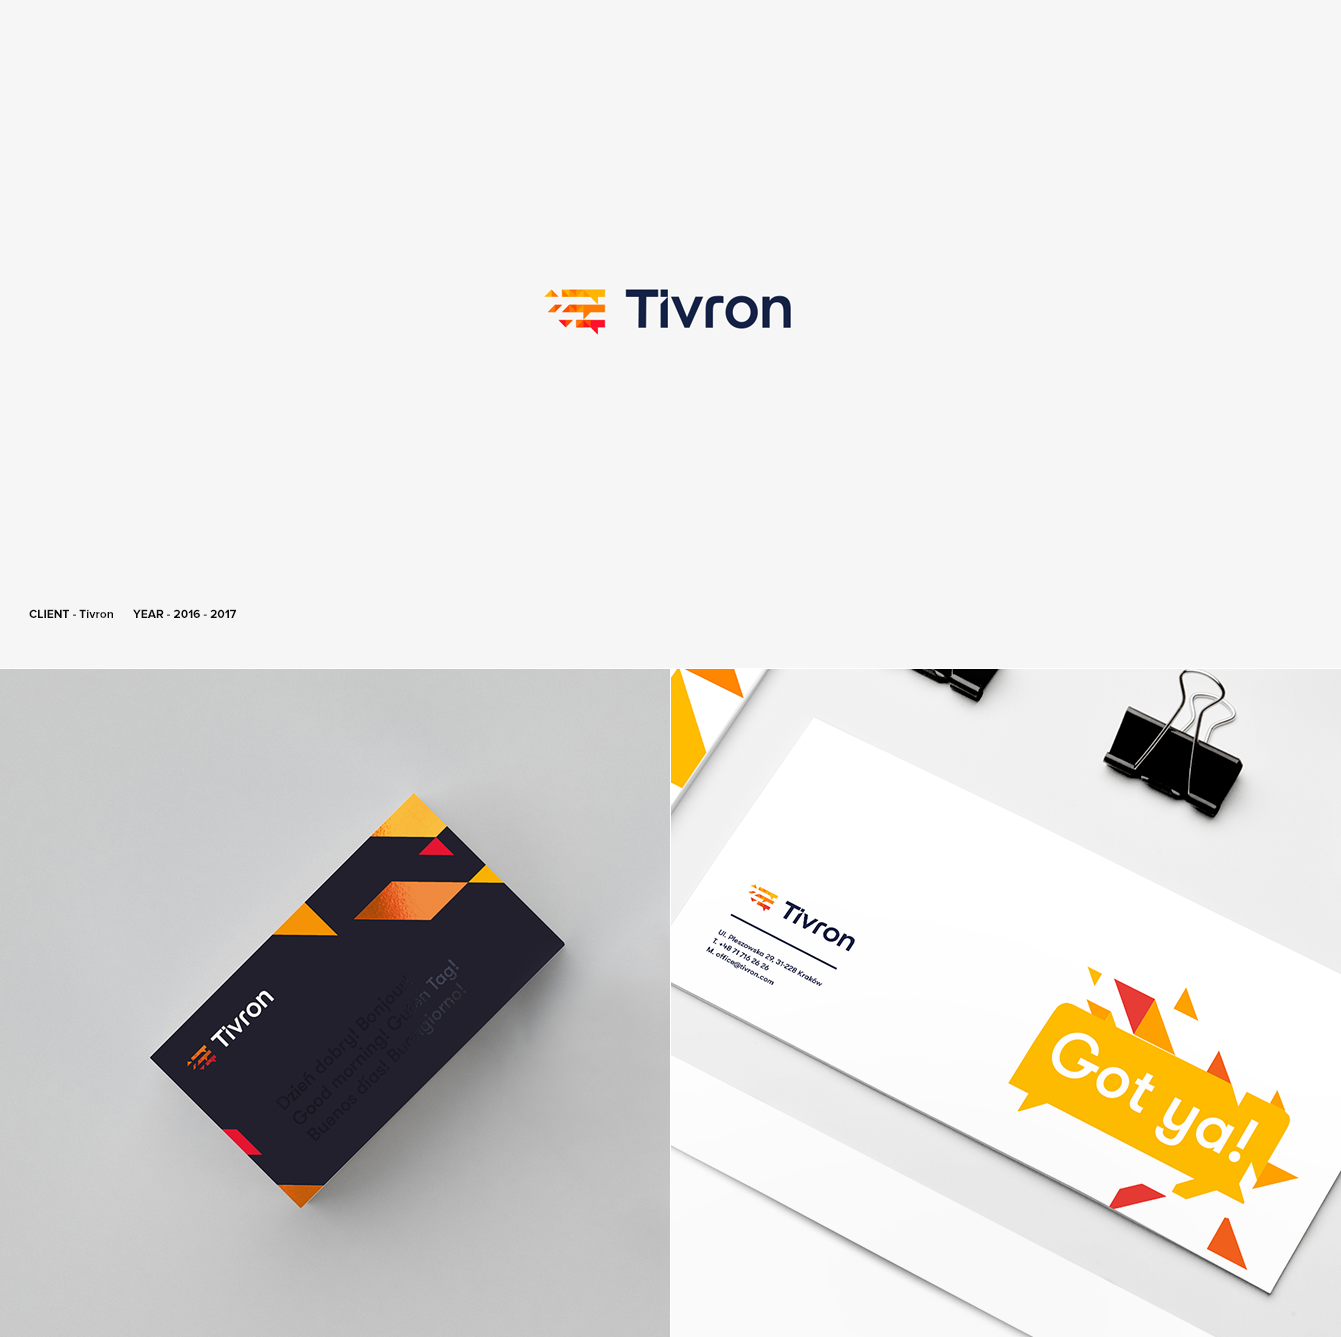 Branding & Graphic Design Works by CHALLENGE Studio